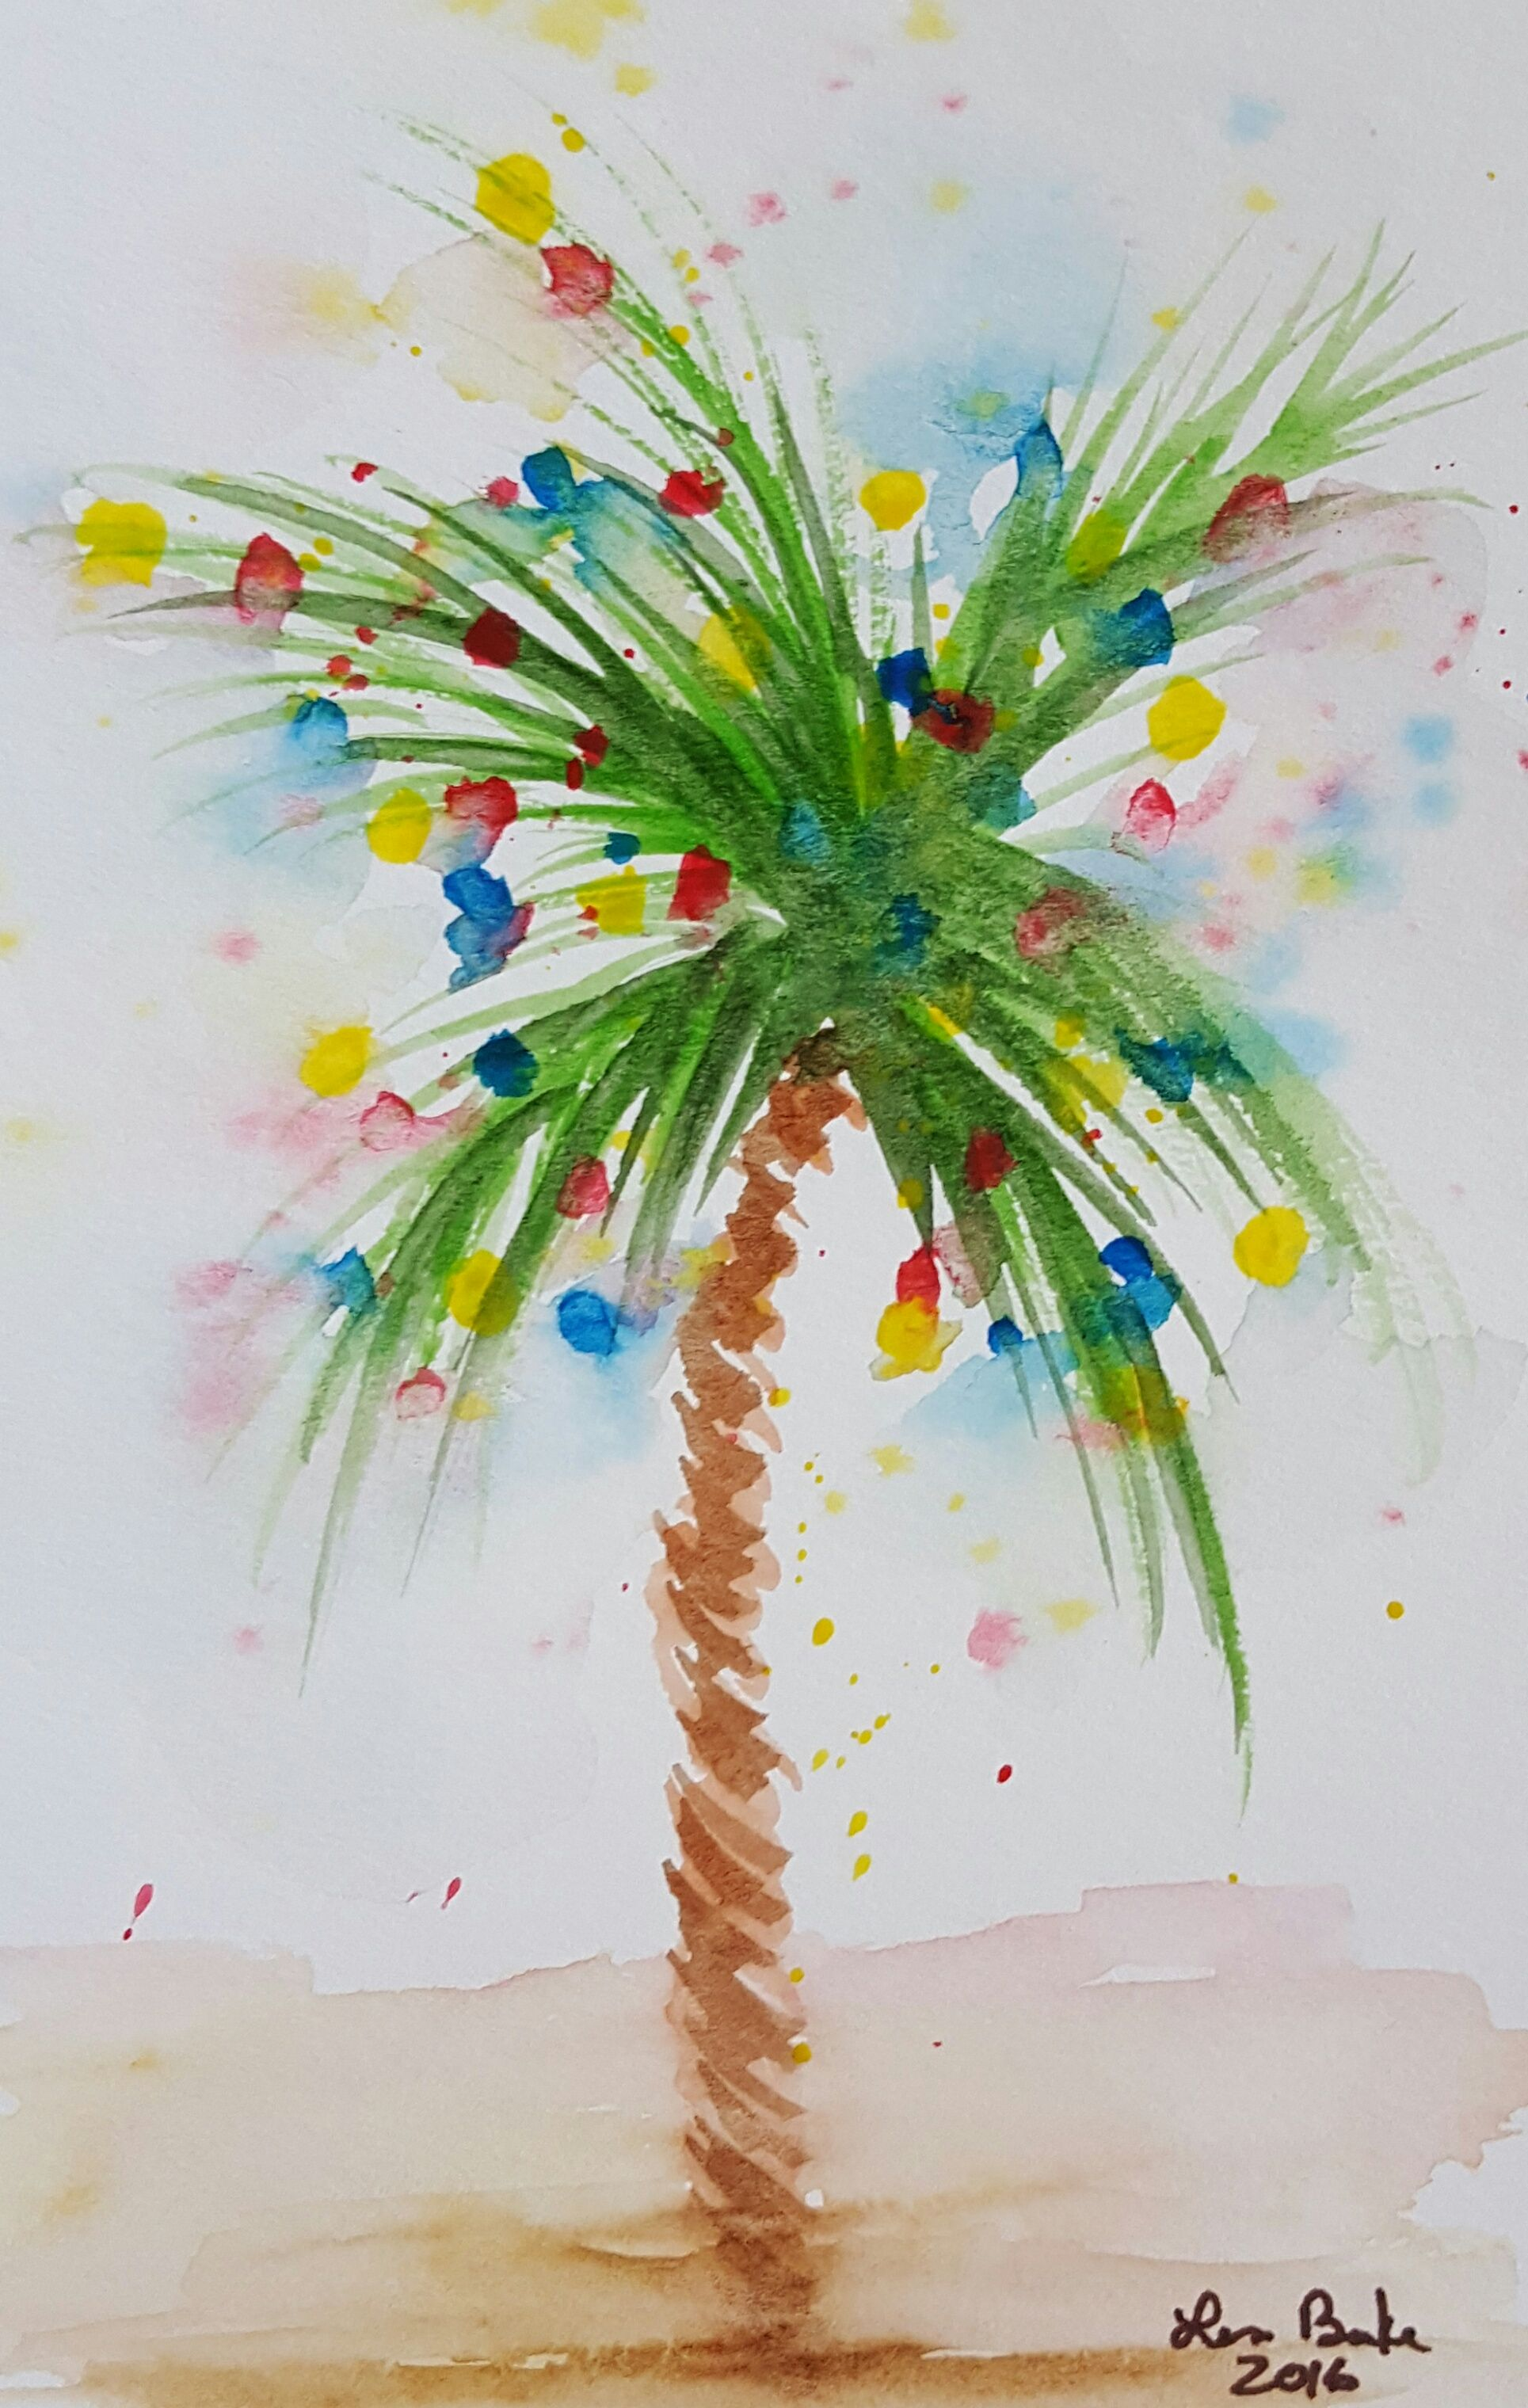 Coastalchristmas Palmtrees Beachychristmas My Original